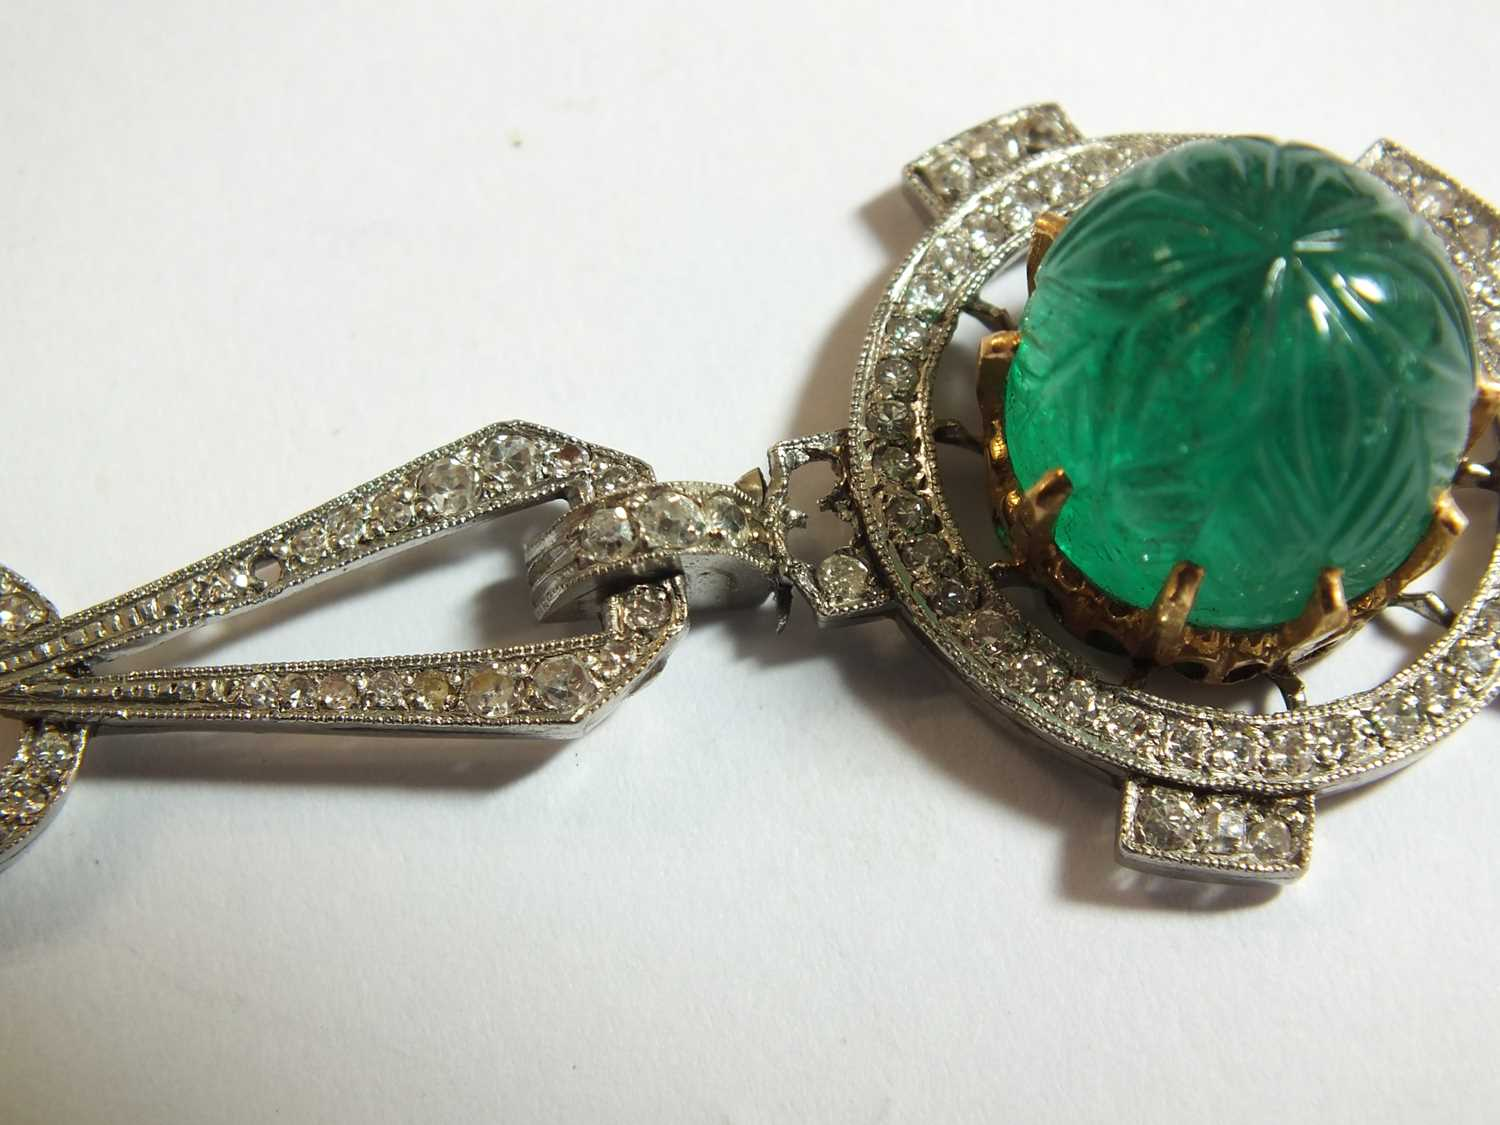 An Art Deco emerald and diamond pendant on chain - Image 4 of 14